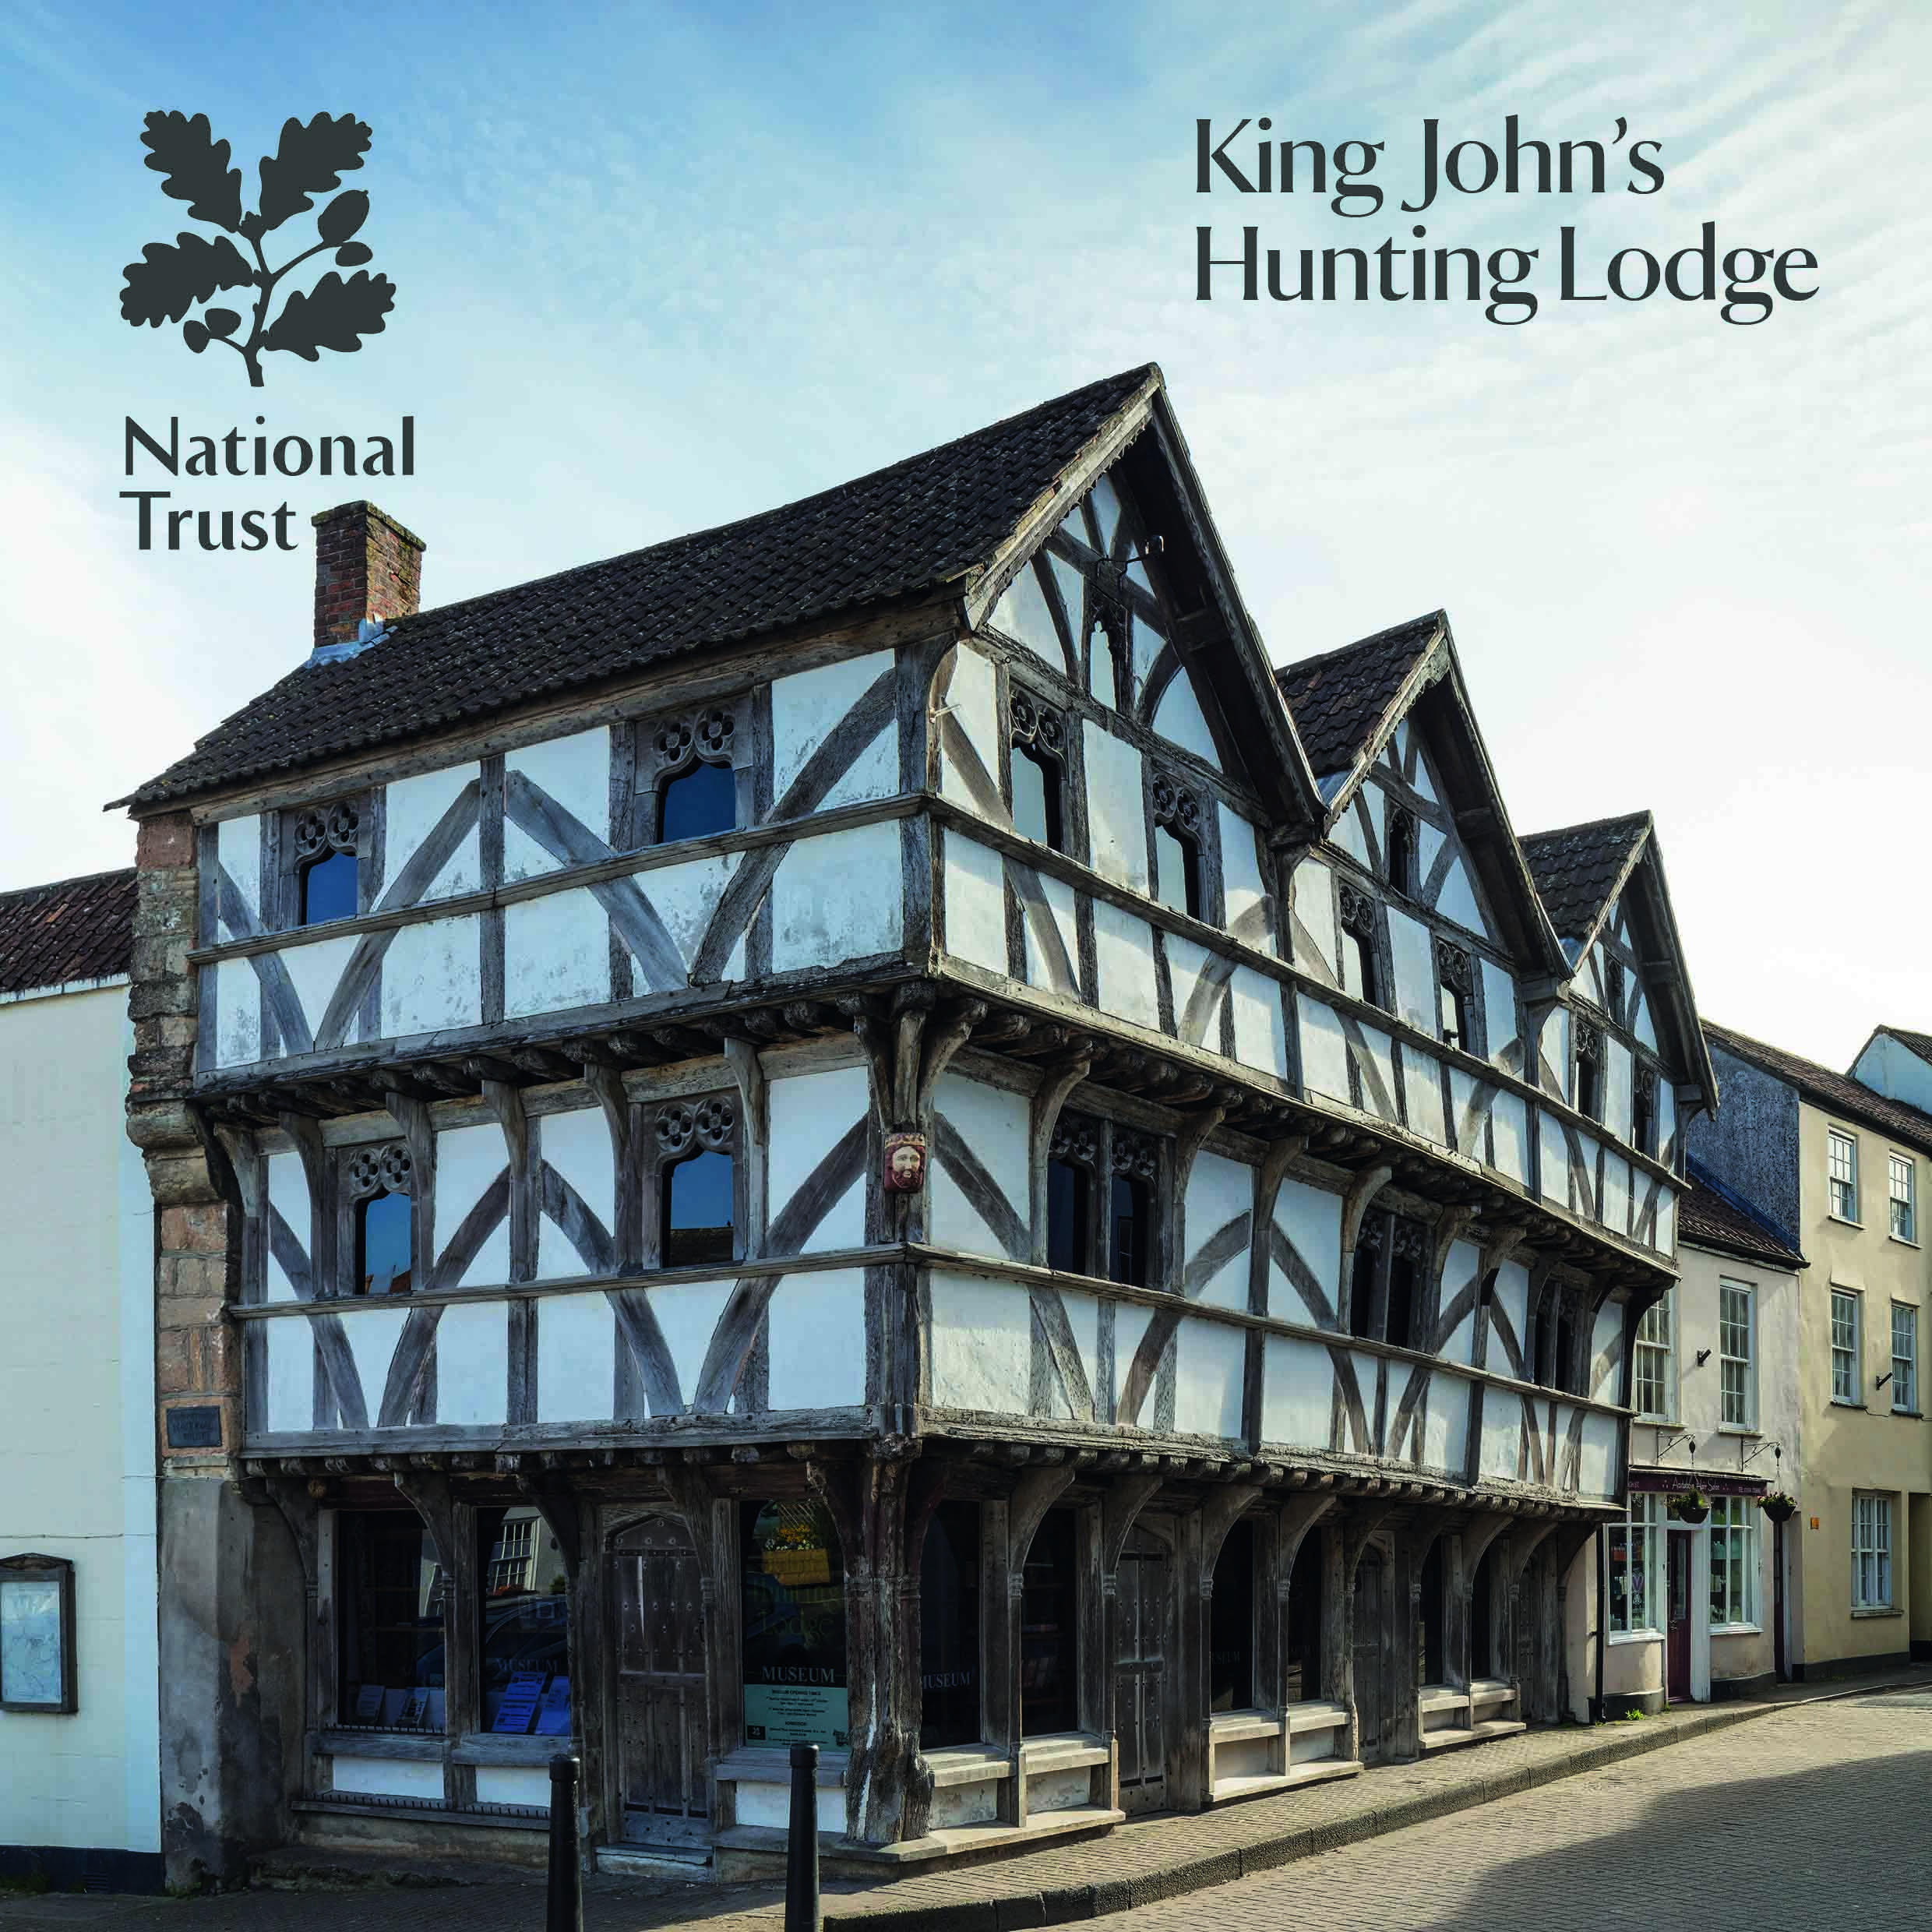 King John's Hunting Lodge